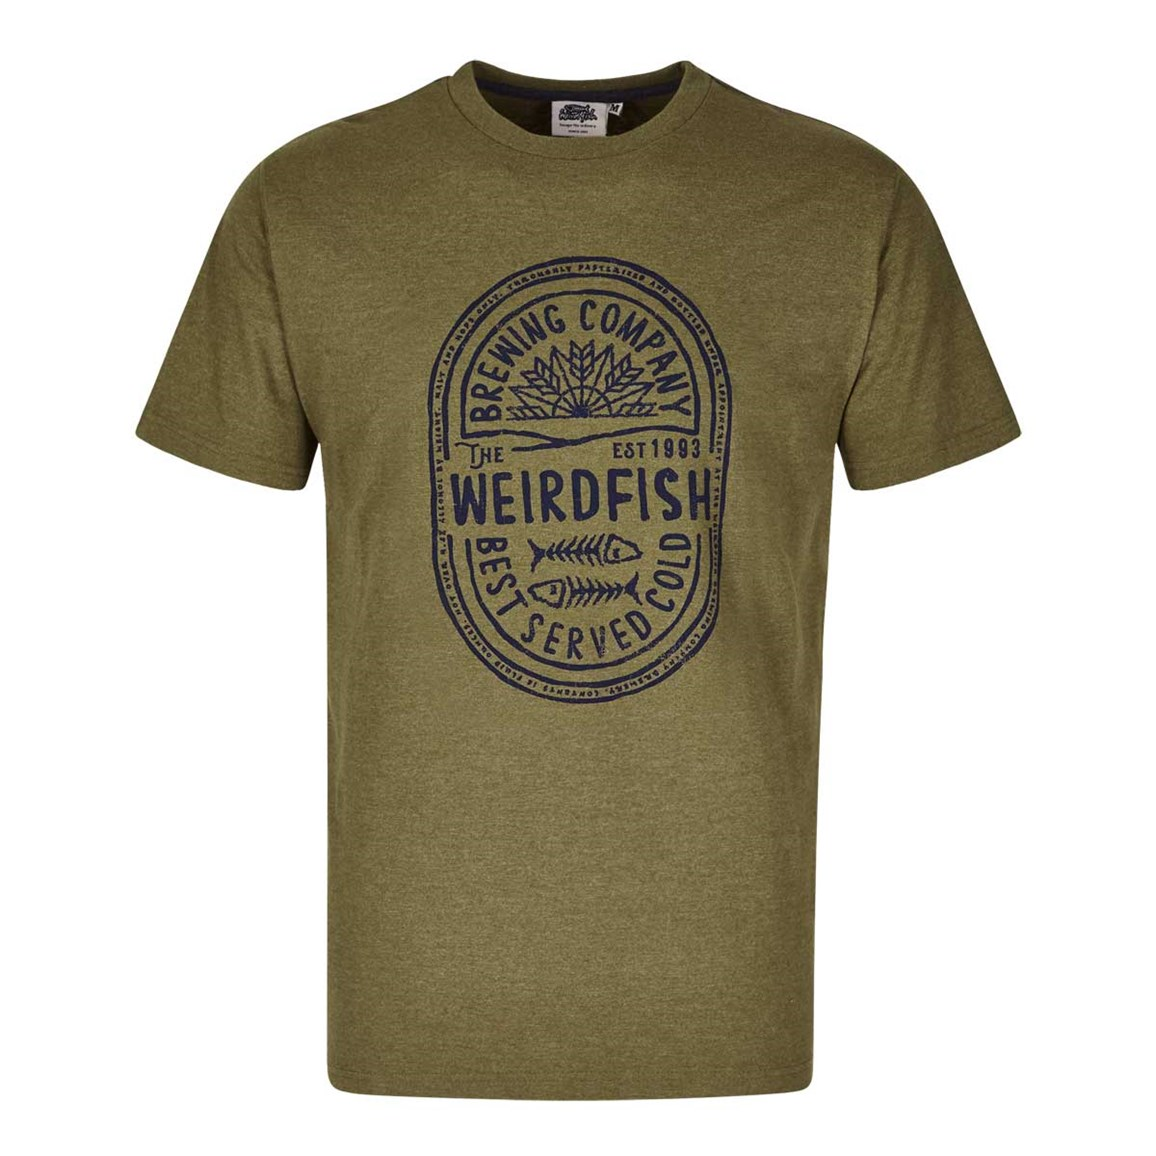 Wf brewing co graphic print t shirt ebay for Graphic t shirt printing company